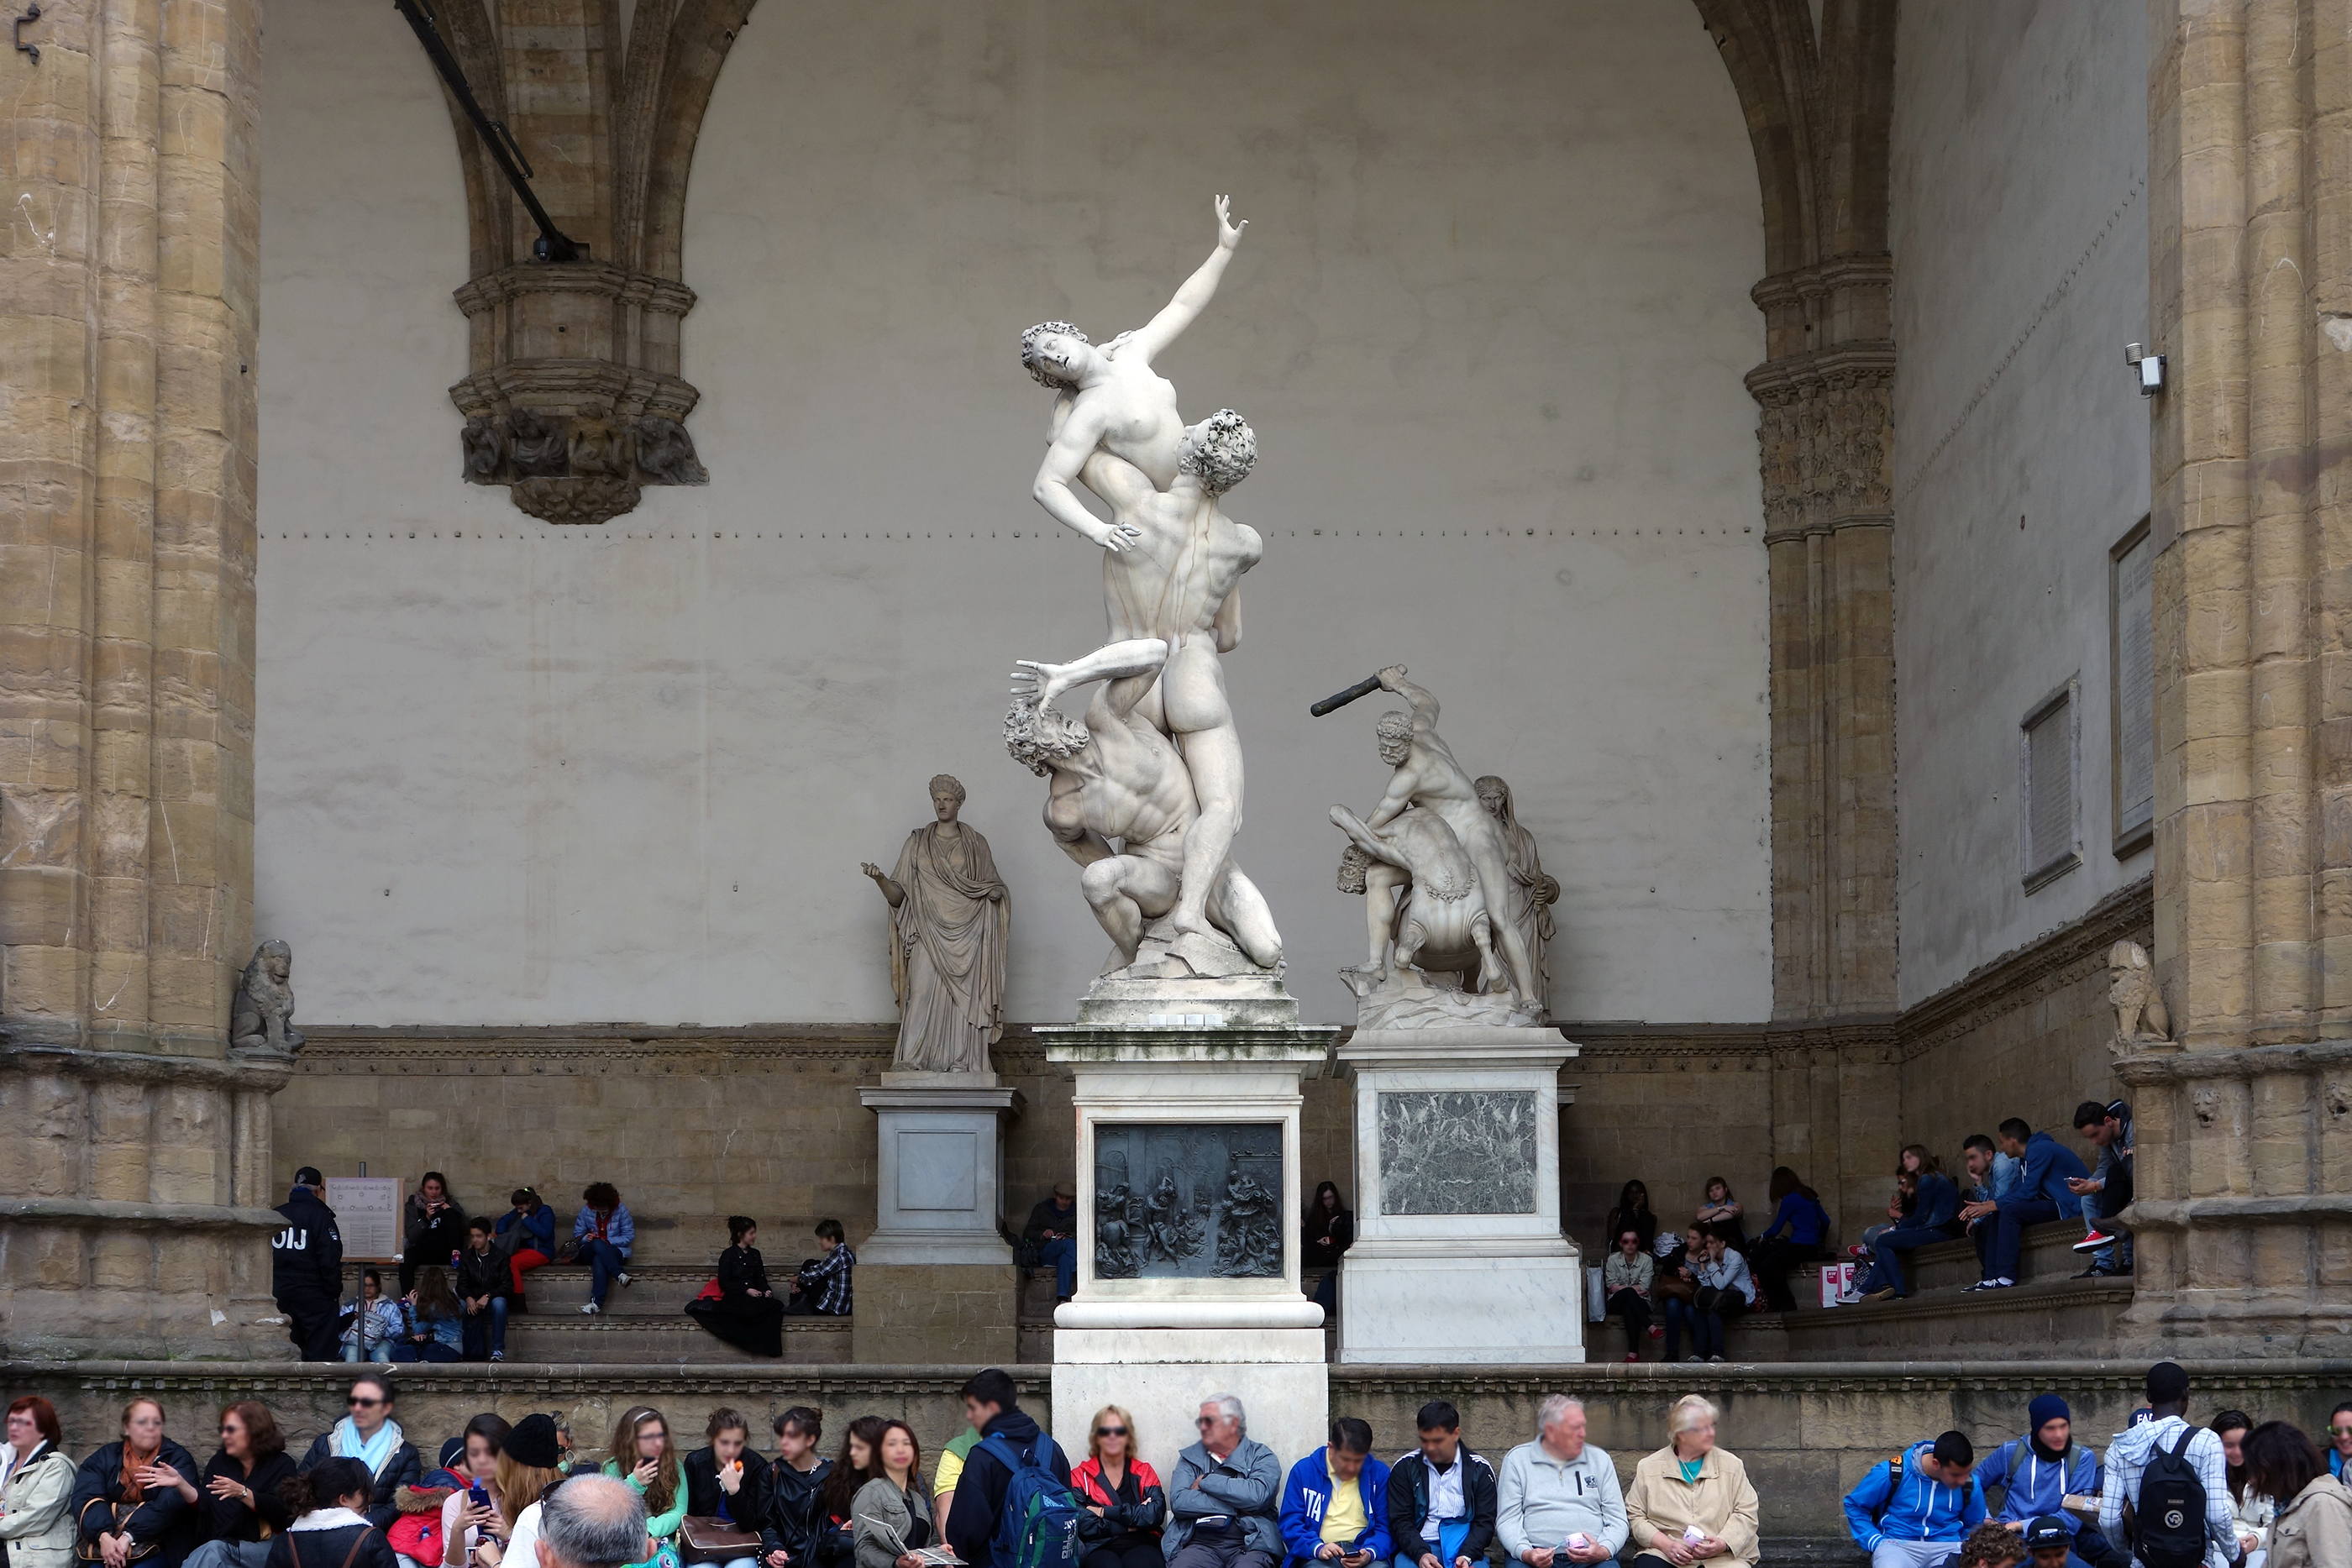 Giambologna, Abduction of a Sabine Woman, 1581-83, marble, 410 cm high (Loggia dei Lanzi, Florence)